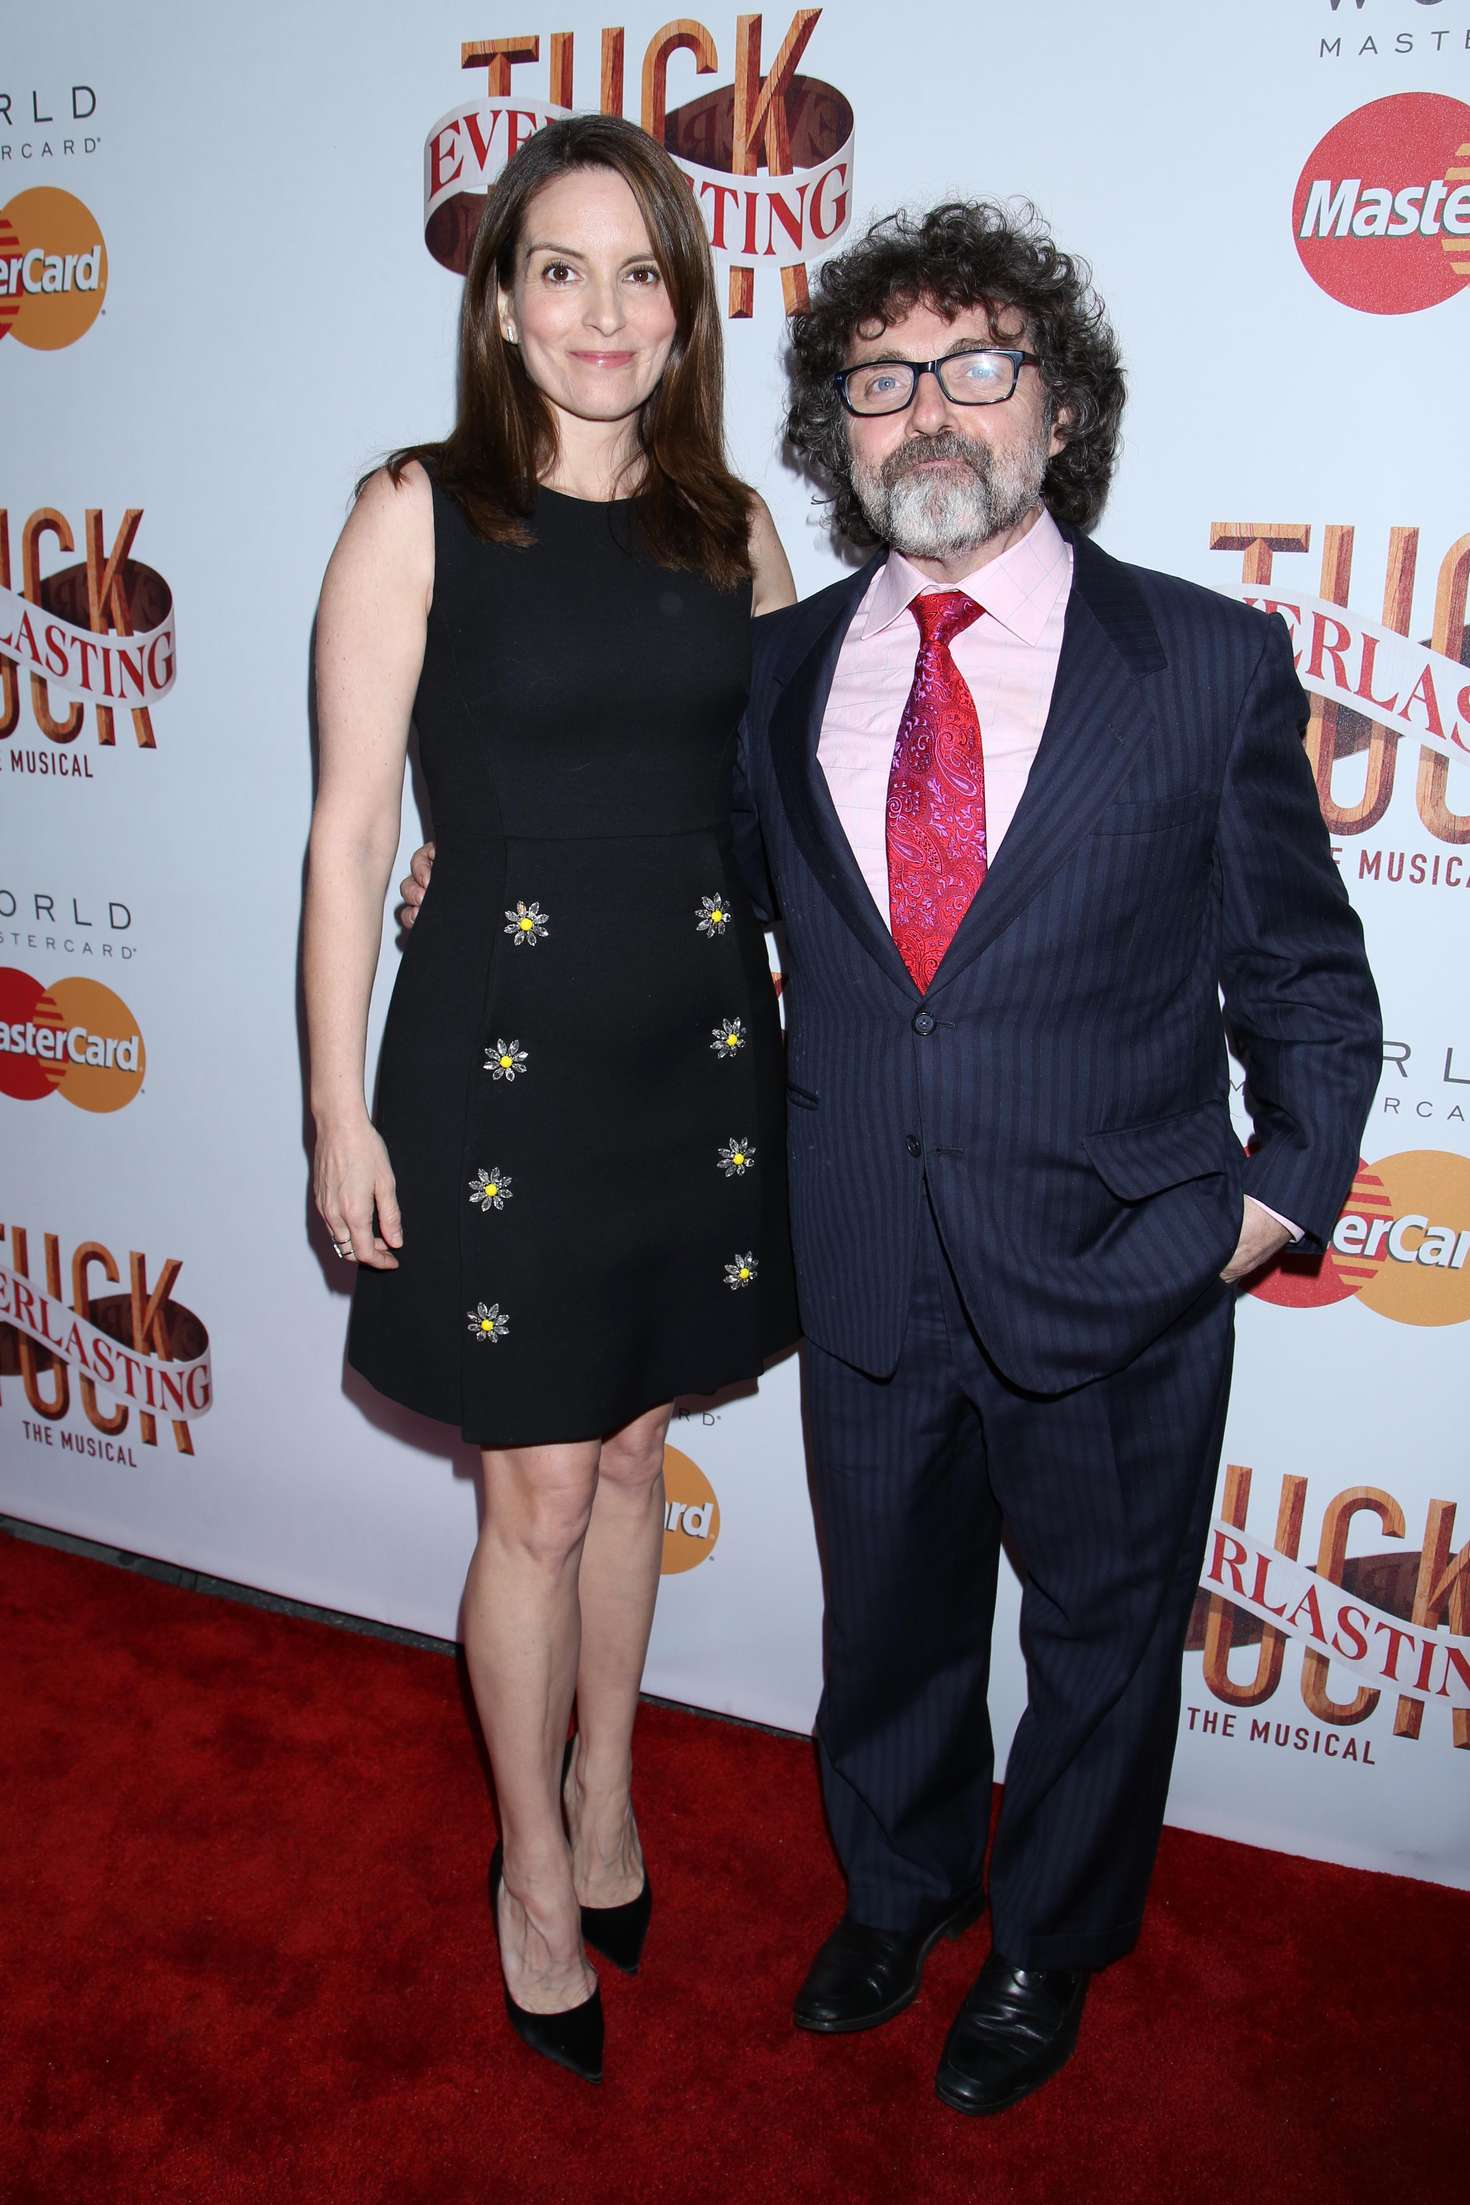 Tina Fey Tuck Everlasting Broadway Opening Night in New York